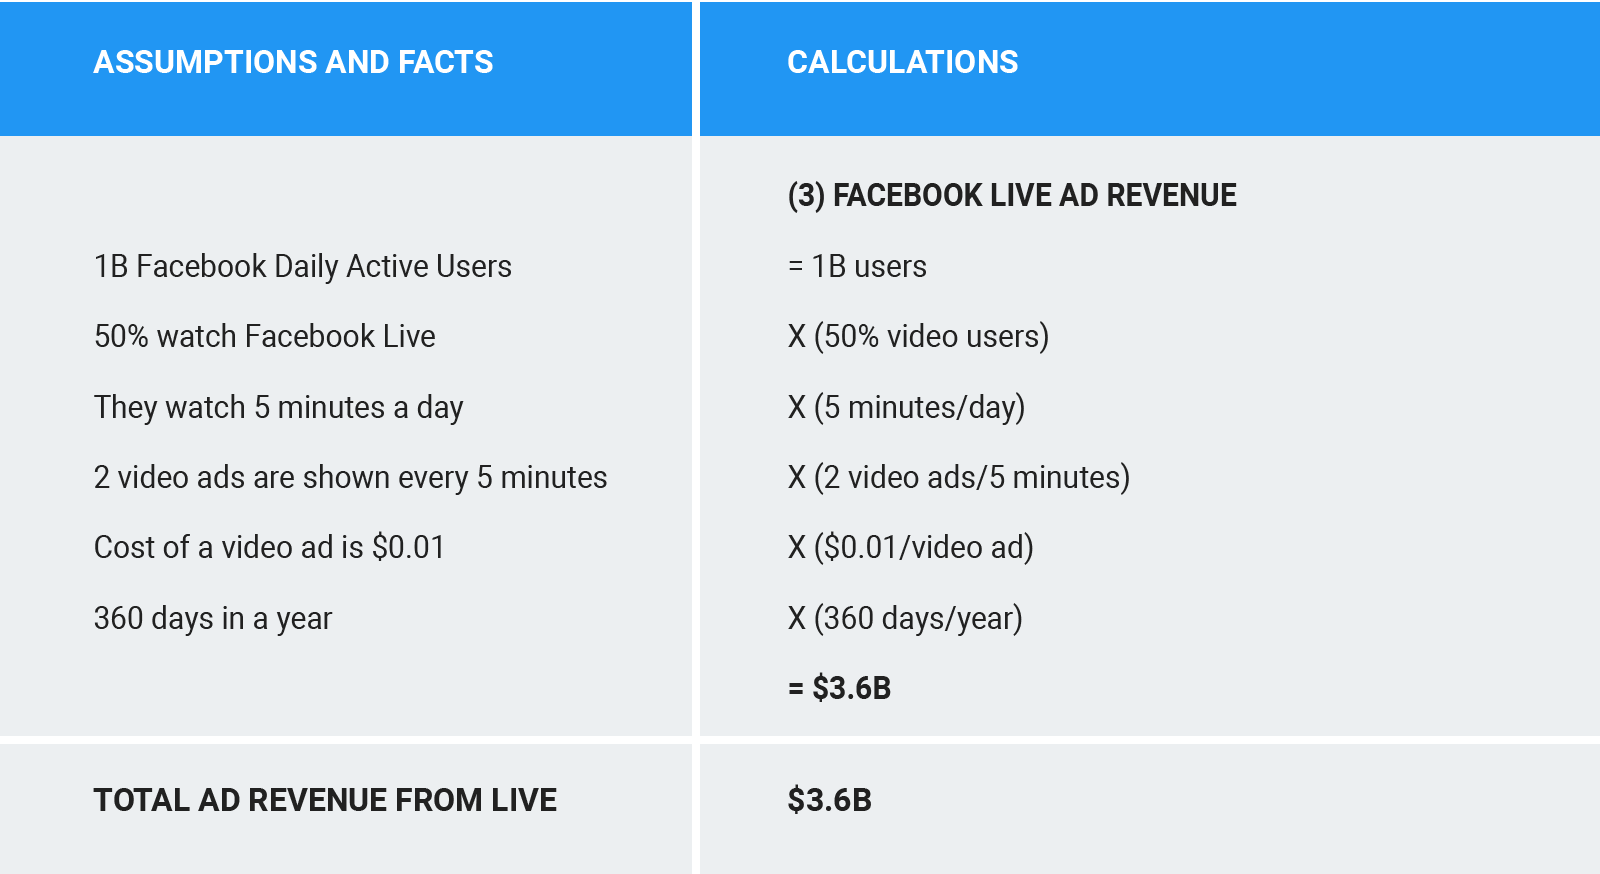 Facebook Live ad revenue